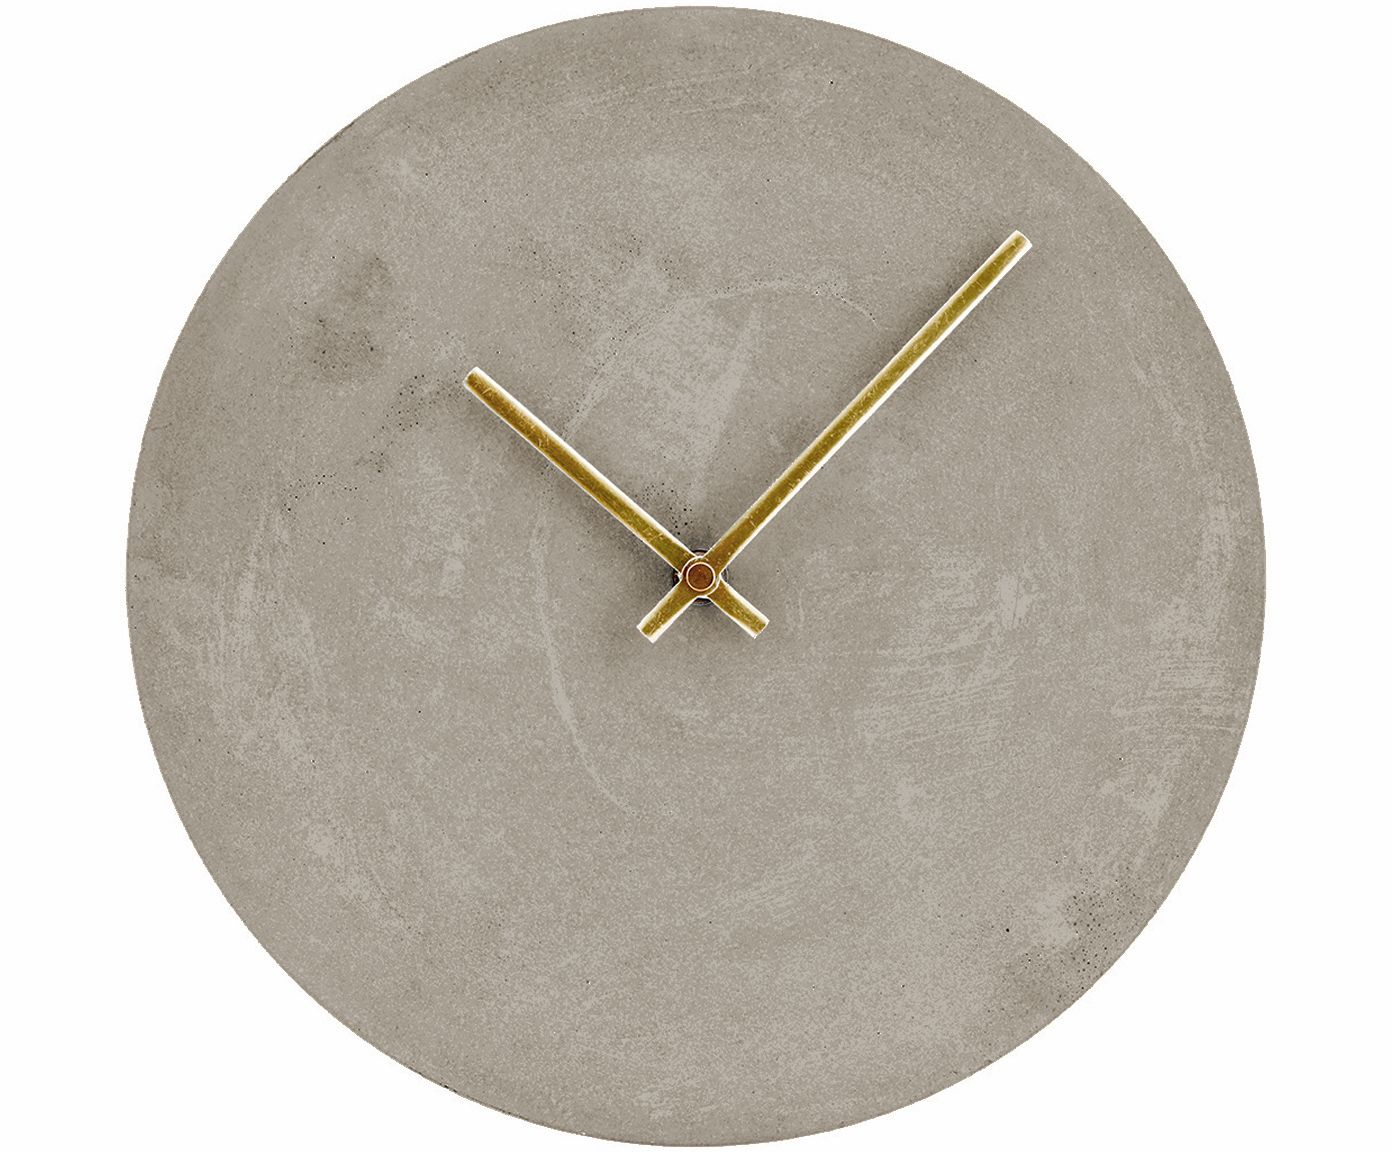 Wanduhr Für Badezimmer Concrete Grey Clock With Gold Hands. #homedecor Uhr In Grau, Gold - House Doctor >> Westwingnow | Wanduhr, Uhrideen, Retro Wanduhr